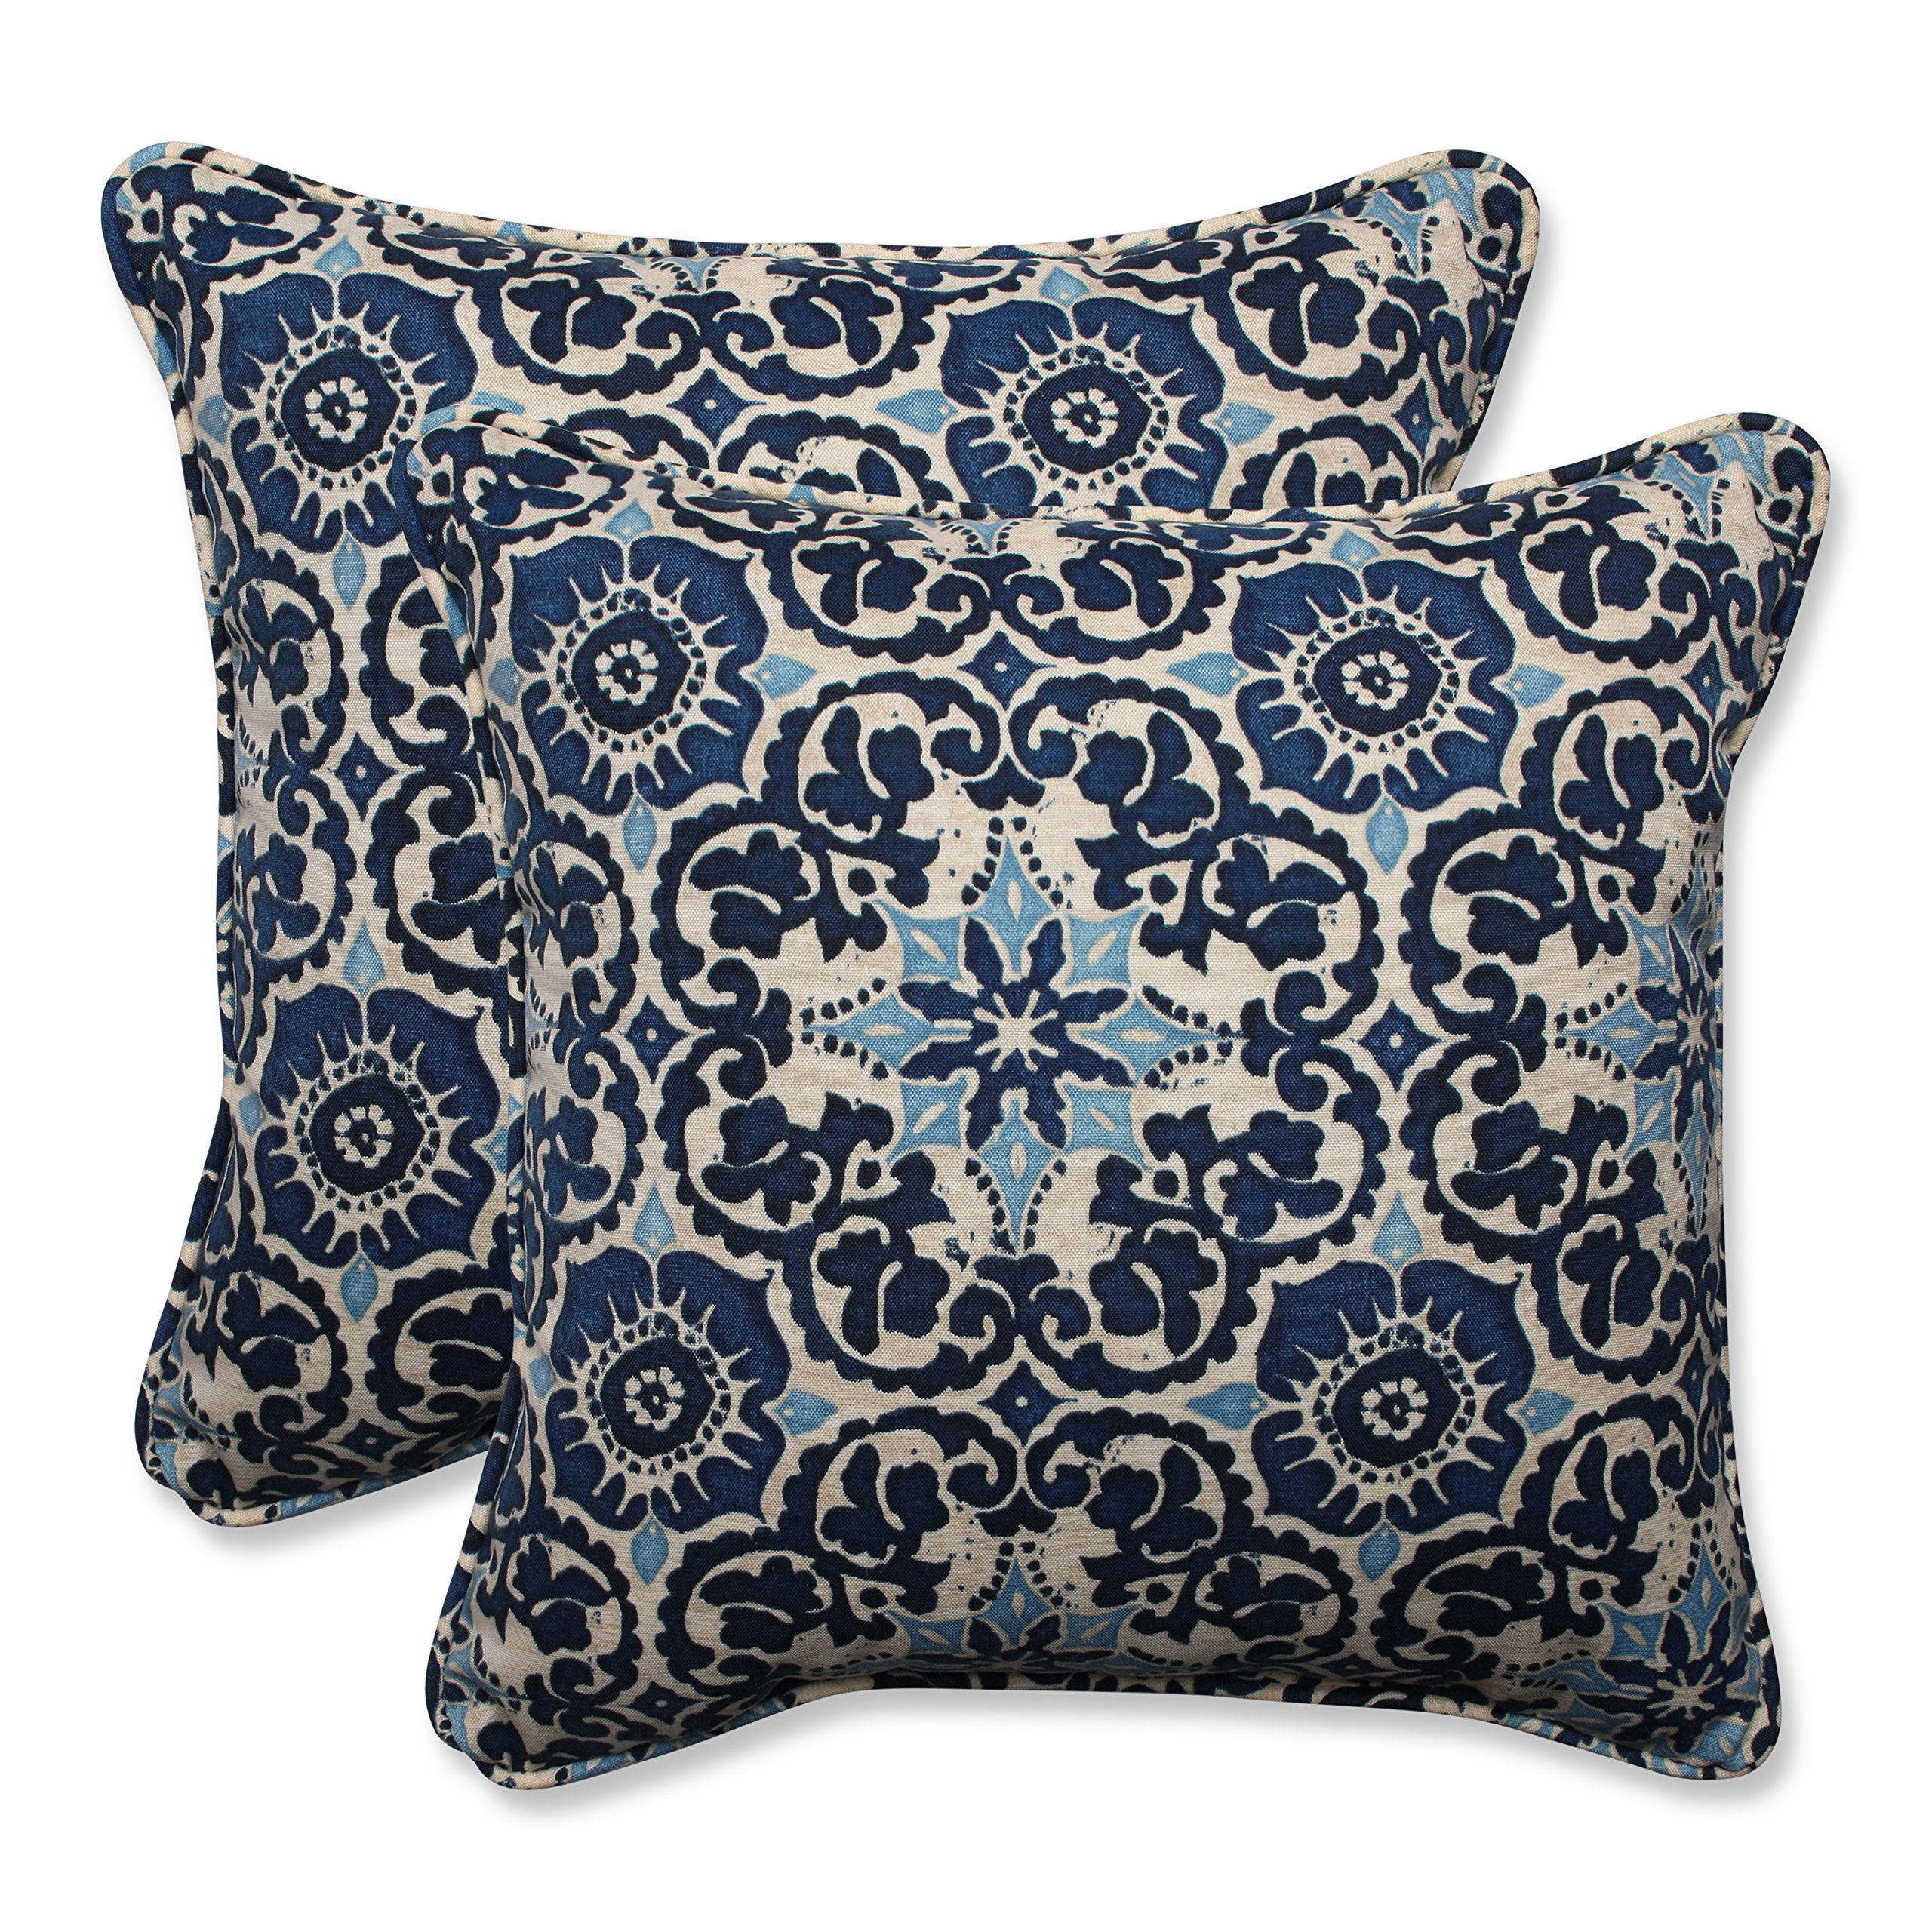 Pillow Perfect Outdoor/Indoor Woodblock Prism Throw Pillow (Set of 2), 18.5'', Blue